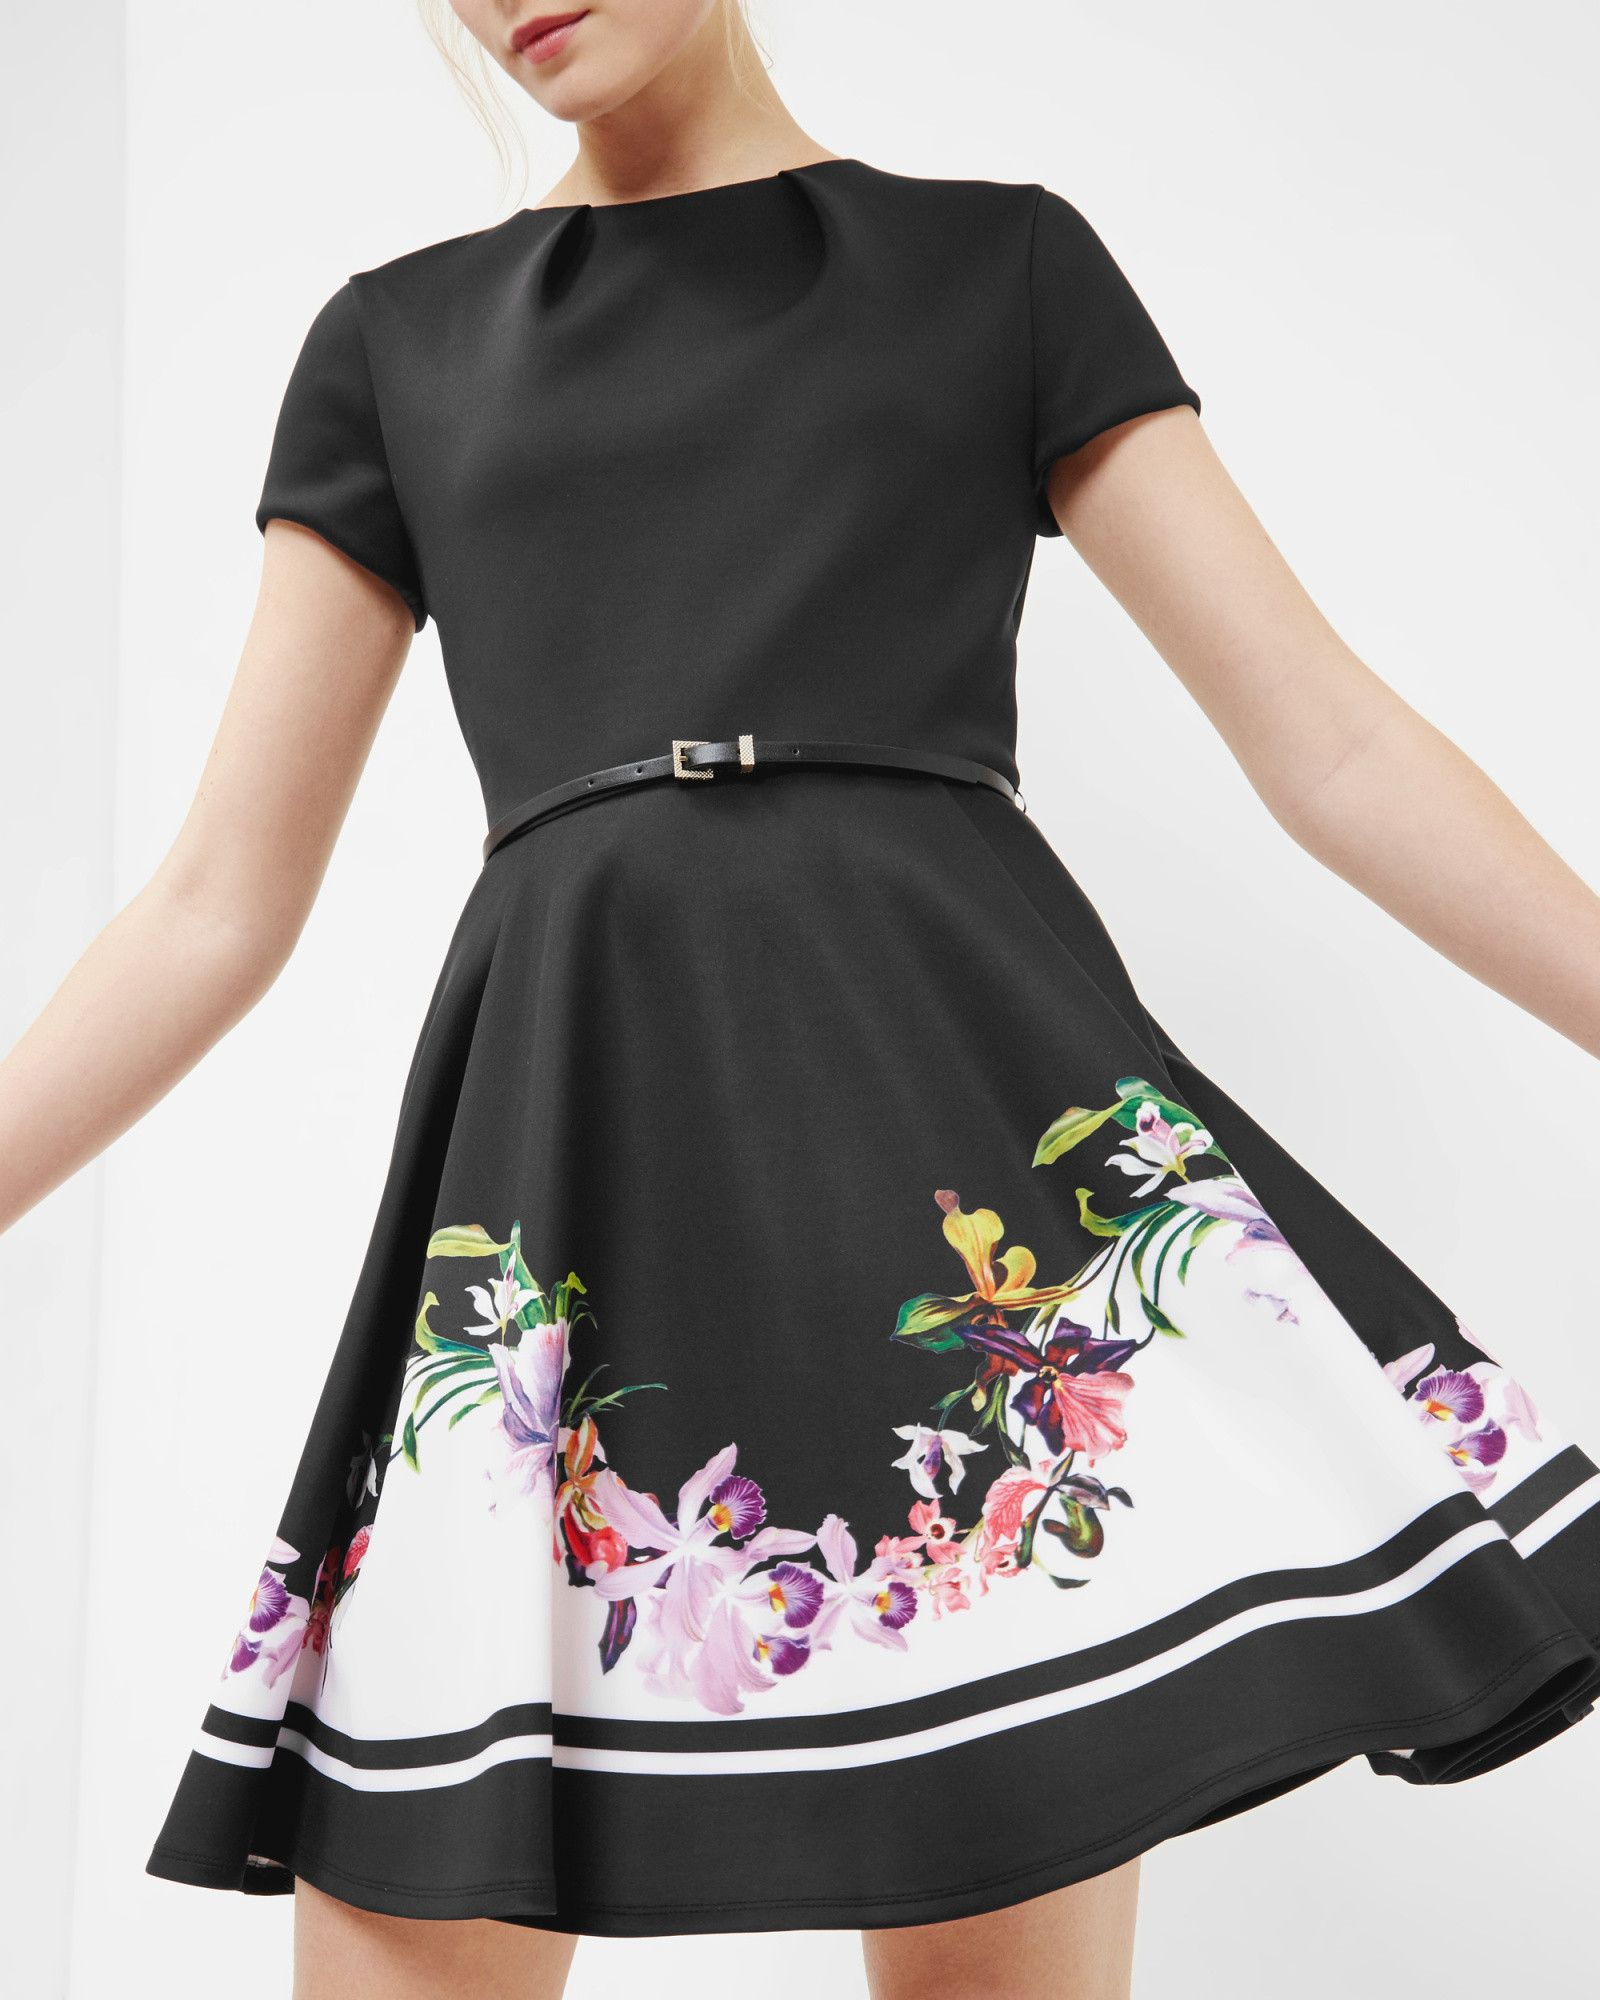 8c253daf1 Discover the latest women s clothing at Ted Baker. Lost Gardens skater dress  - Black